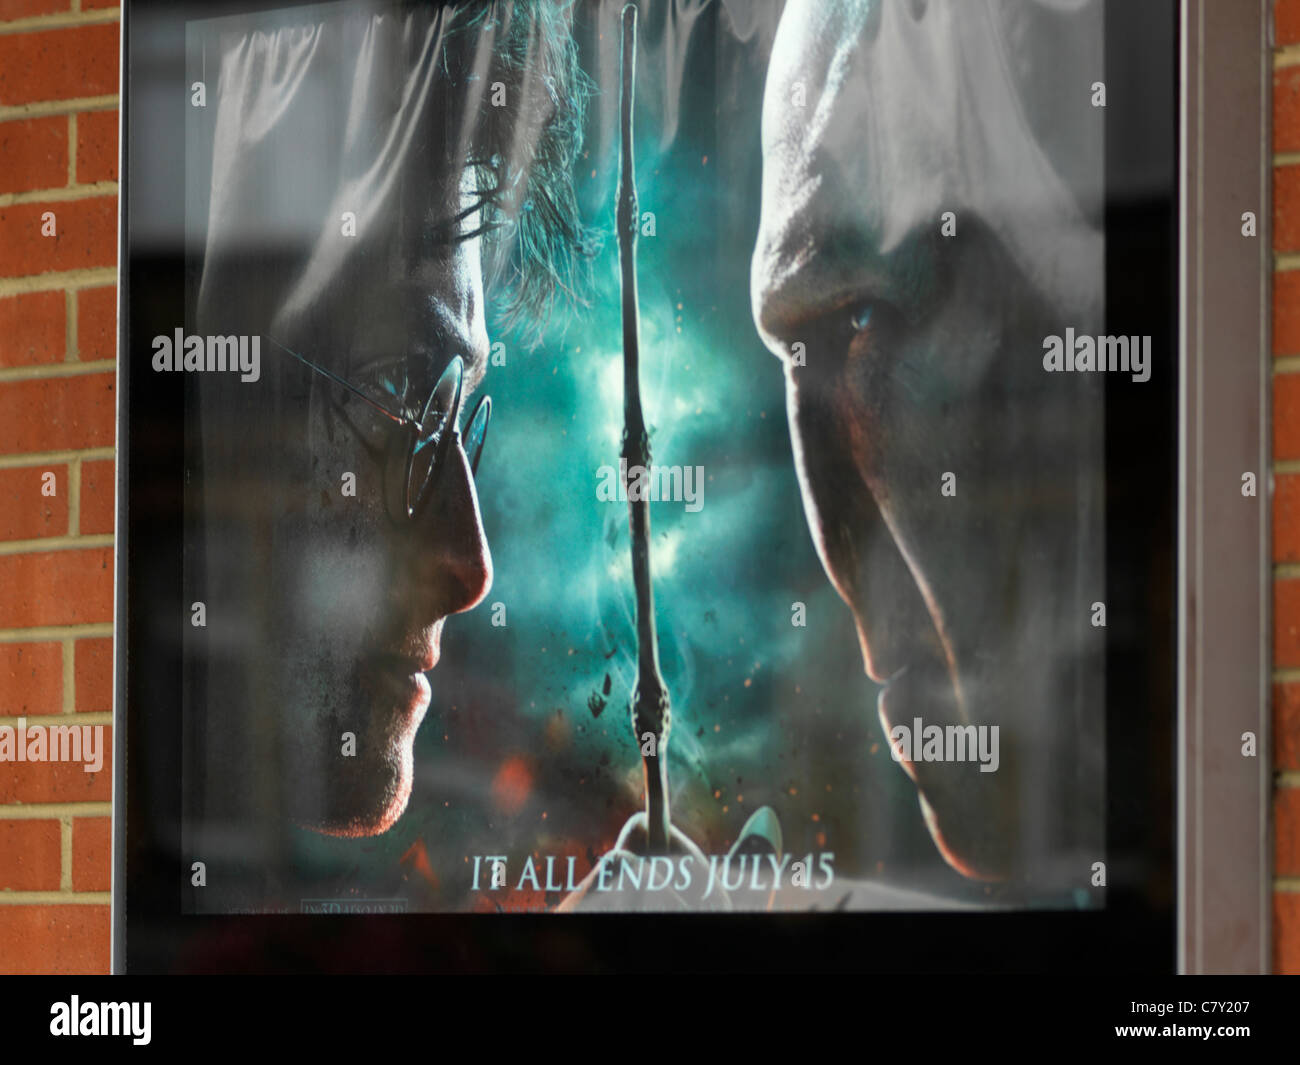 Cinema Poster Harry Potter And The Deathly Hallows - Stock Image